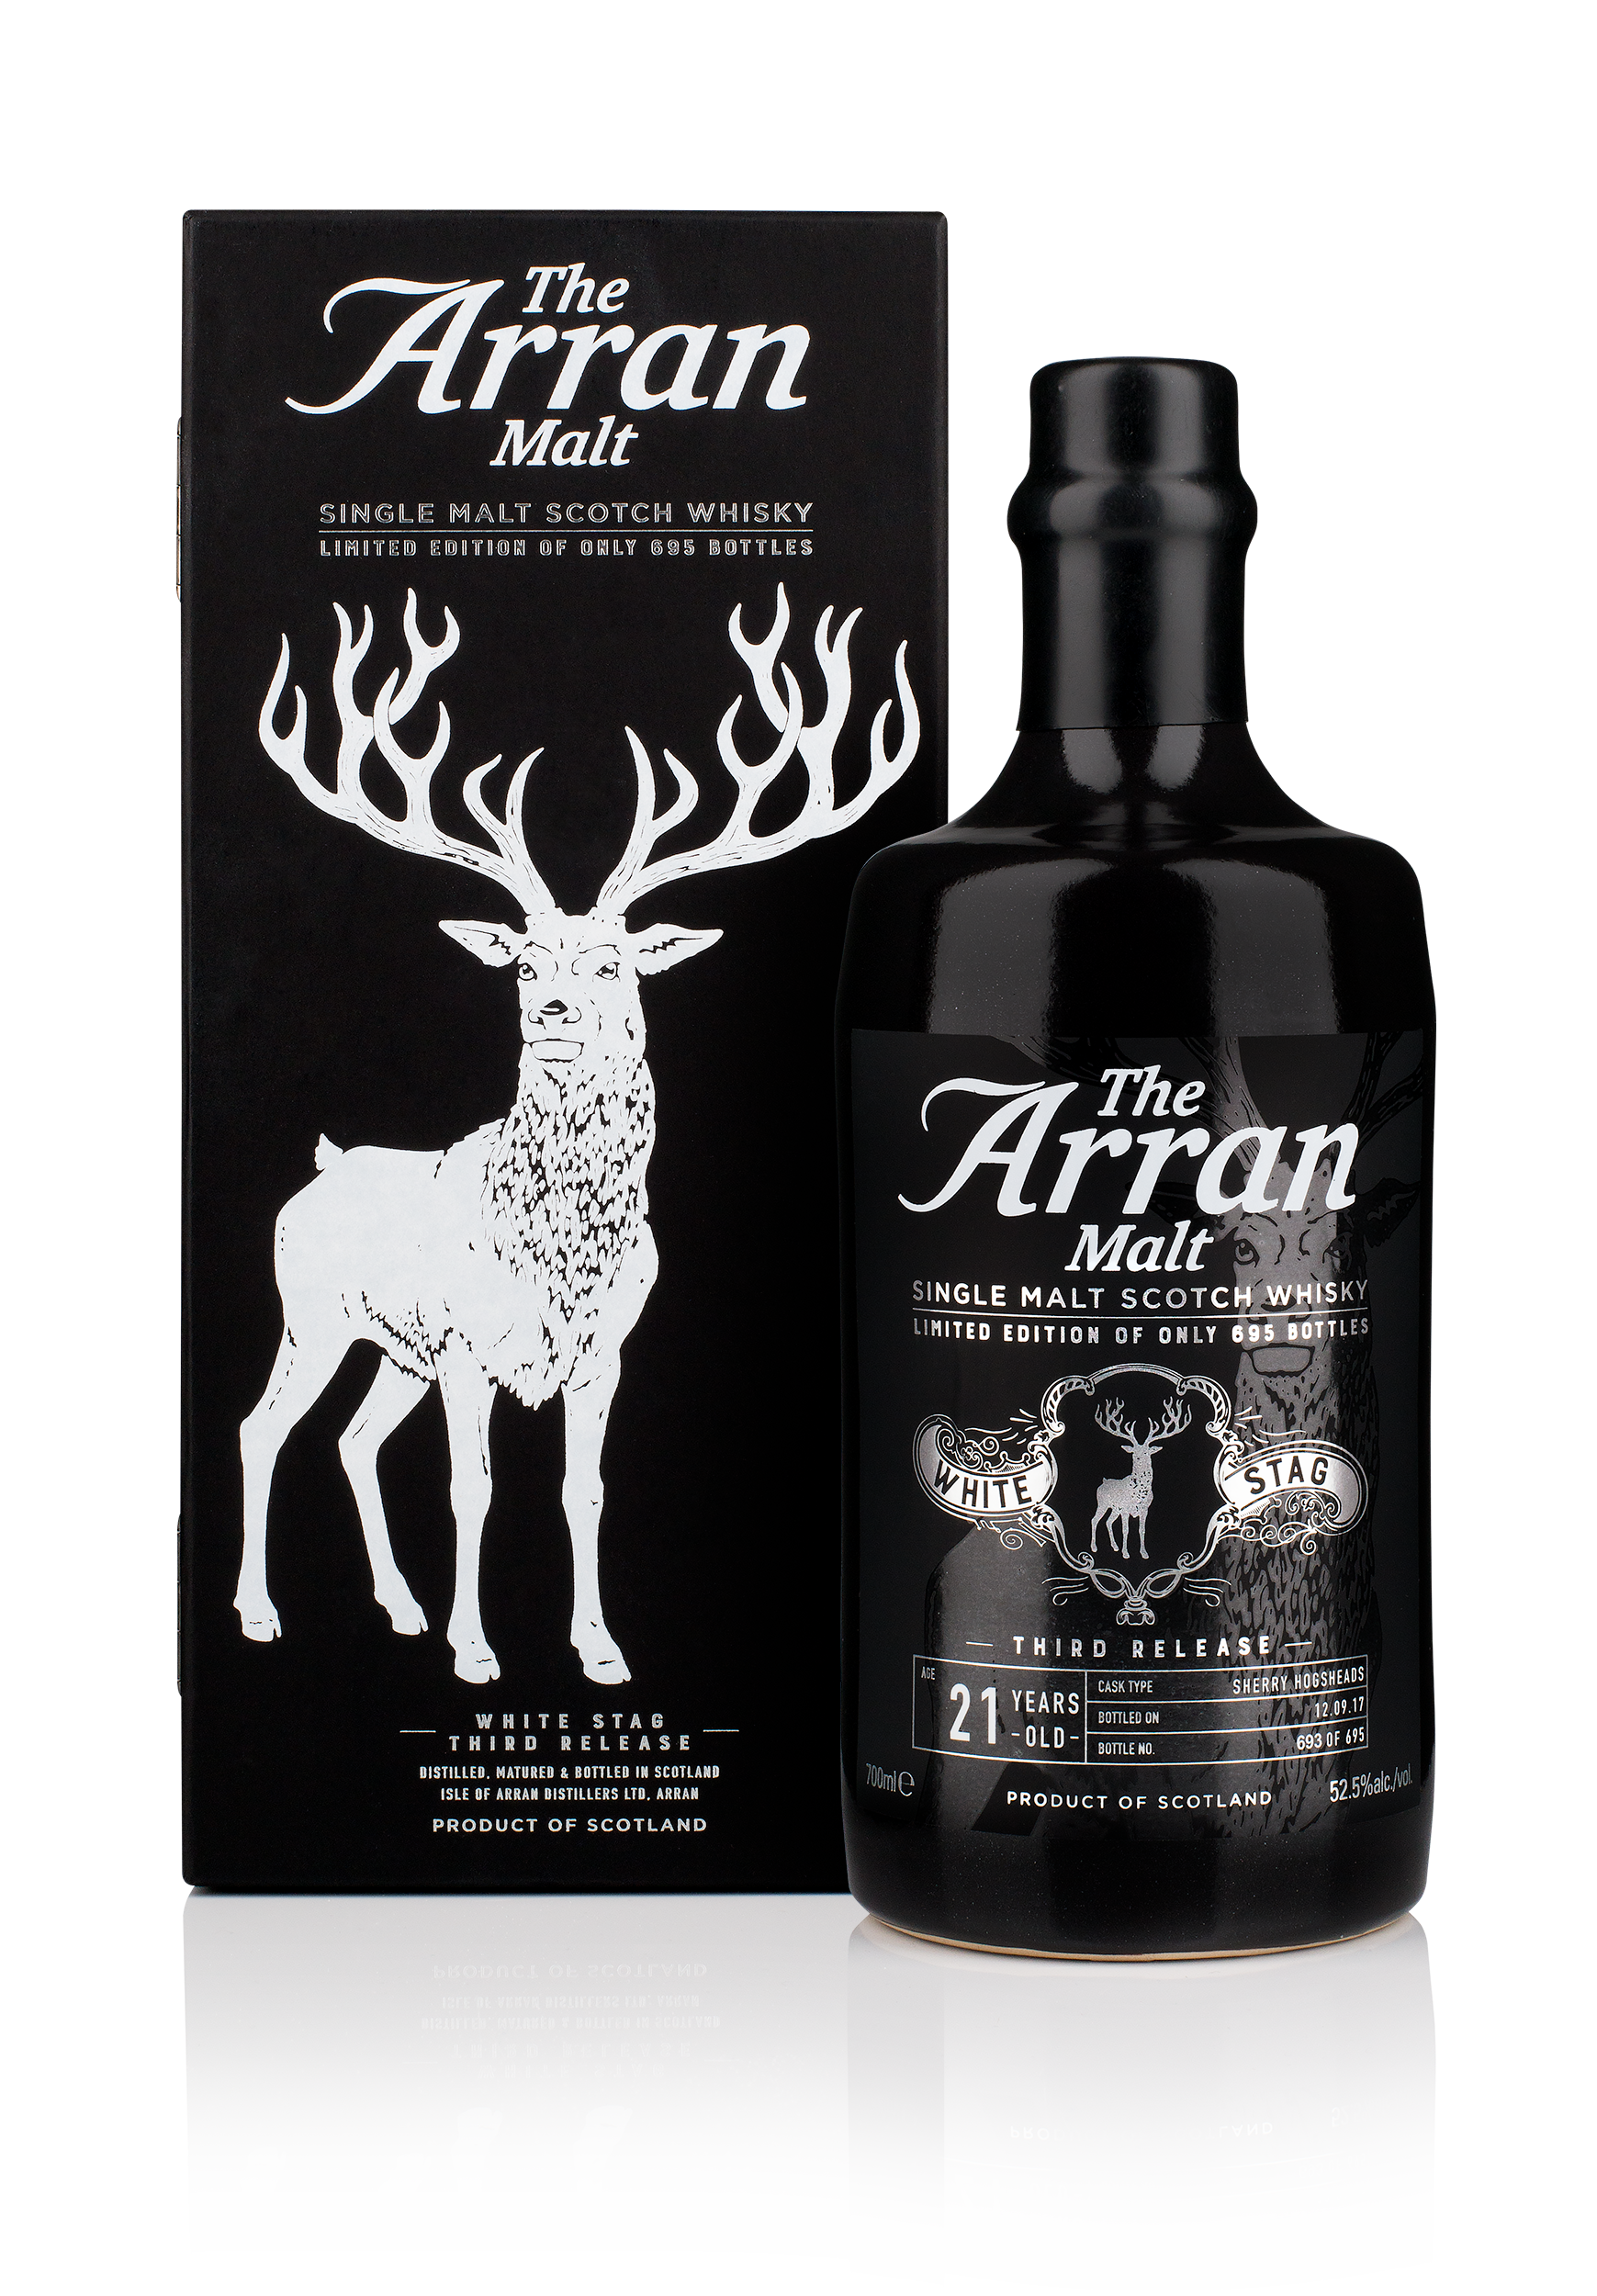 Arran White Stag Bottle and Box